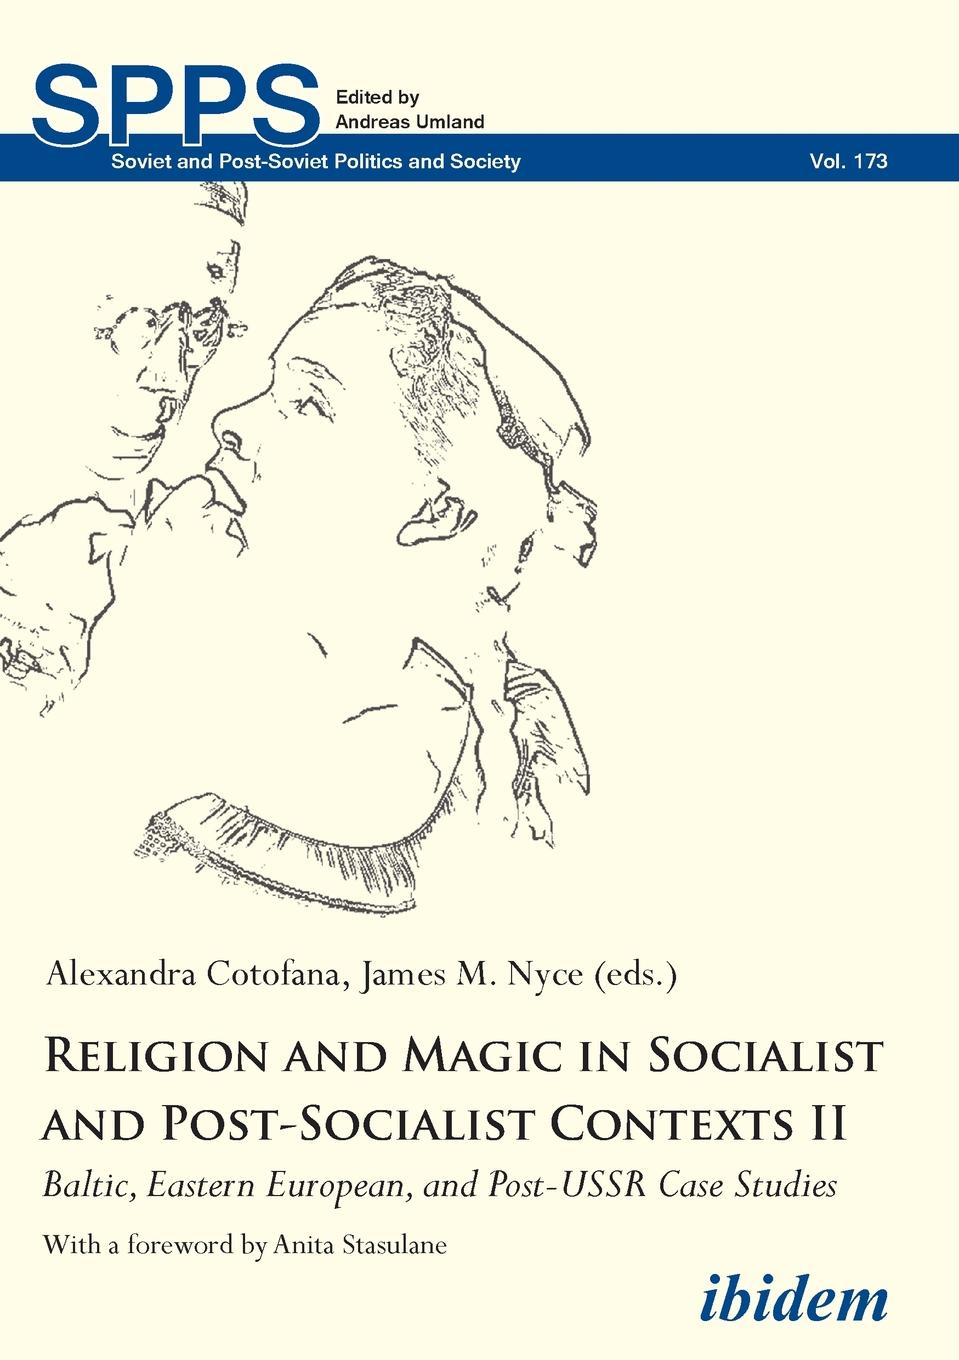 Religion and Magic in Socialist and Post-Socialist Contexts II. Baltic, Eastern European, and Post-USSR Case Studies gender in twentieth century eastern europe and the ussr